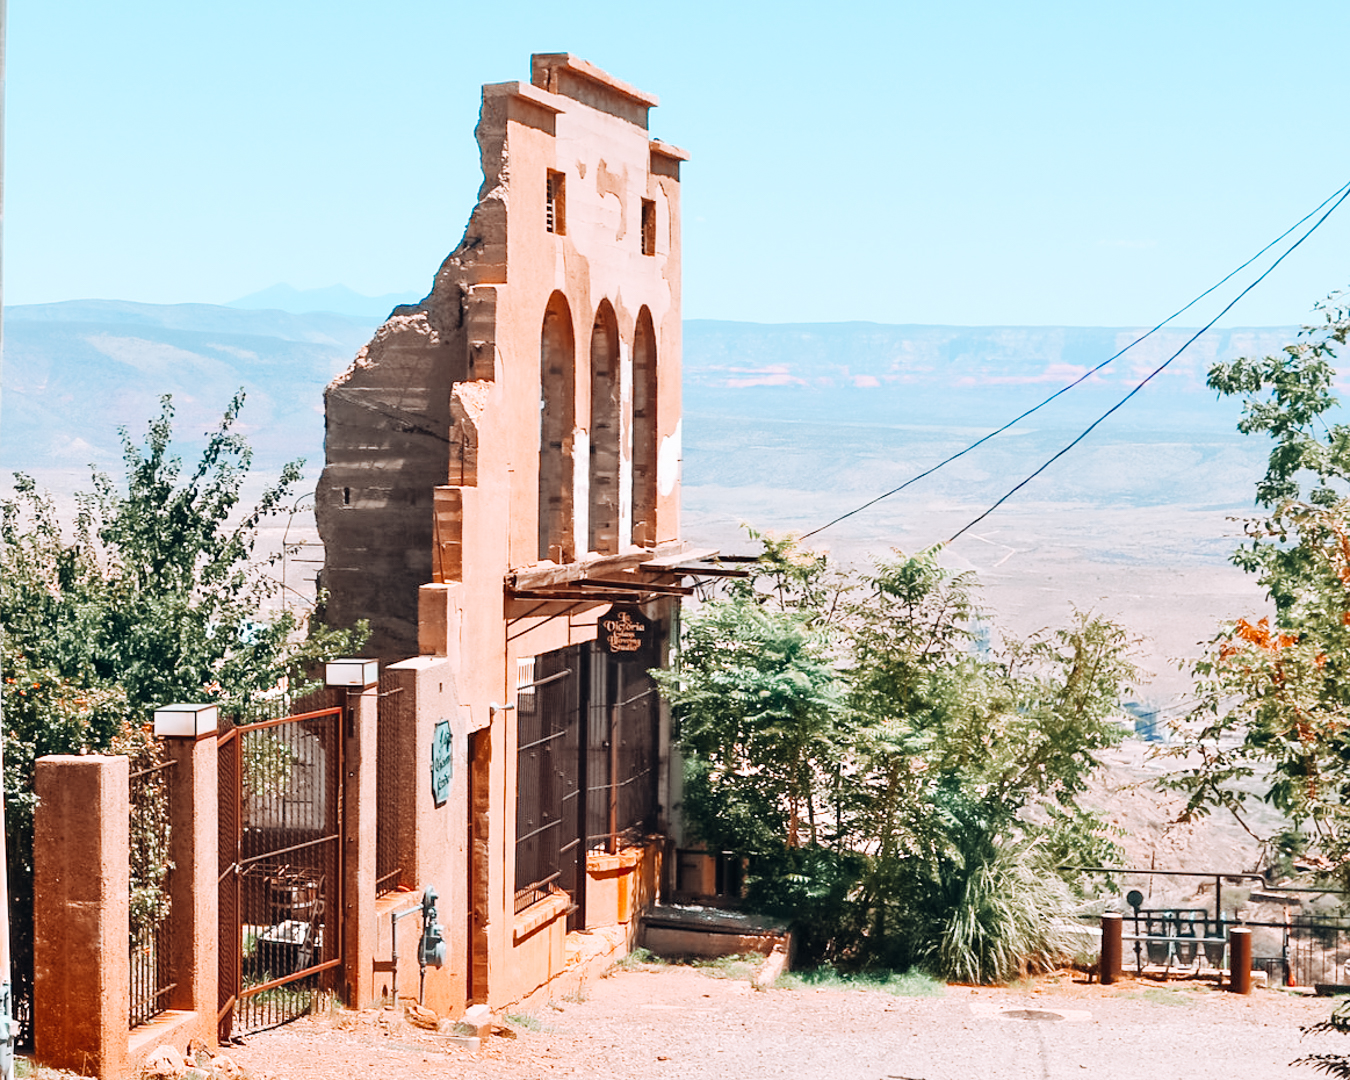 Building in Jerome